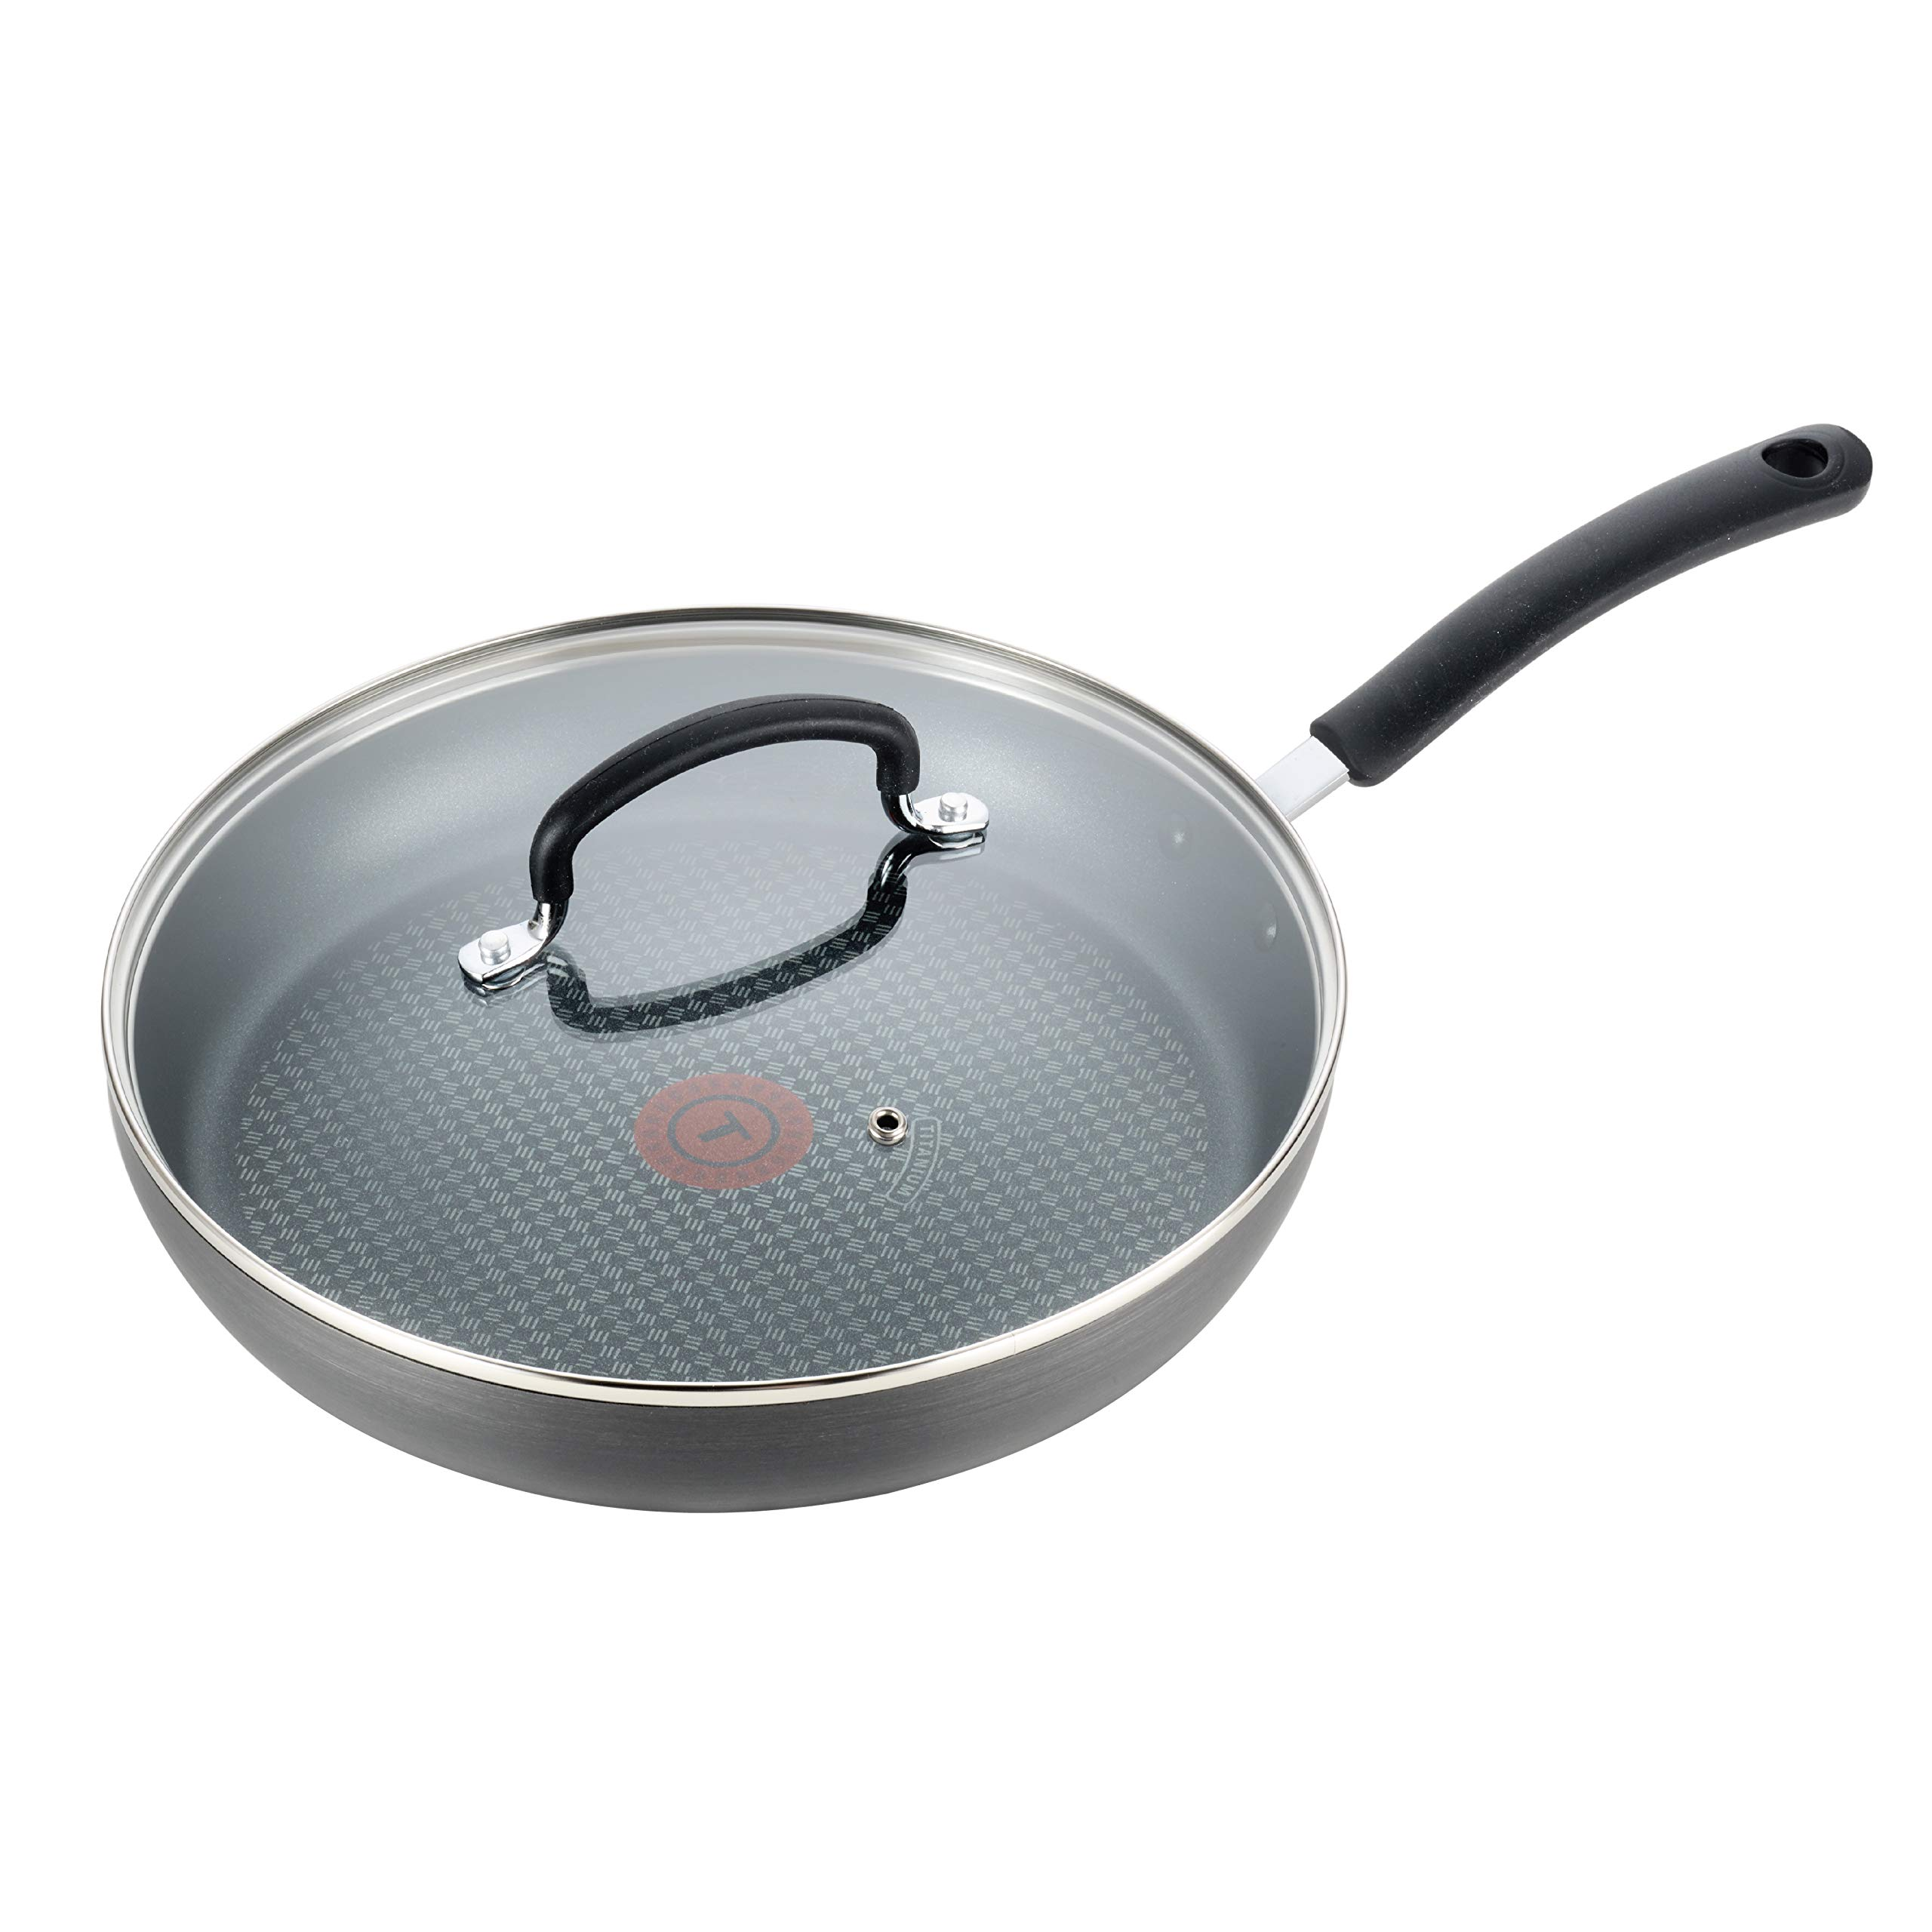 T-fal E76507 Ultimate Hard Anodized Nonstick 12 Inch Fry Pan with Lid, Dishwasher Safe Frying Pan, Black by T-fal